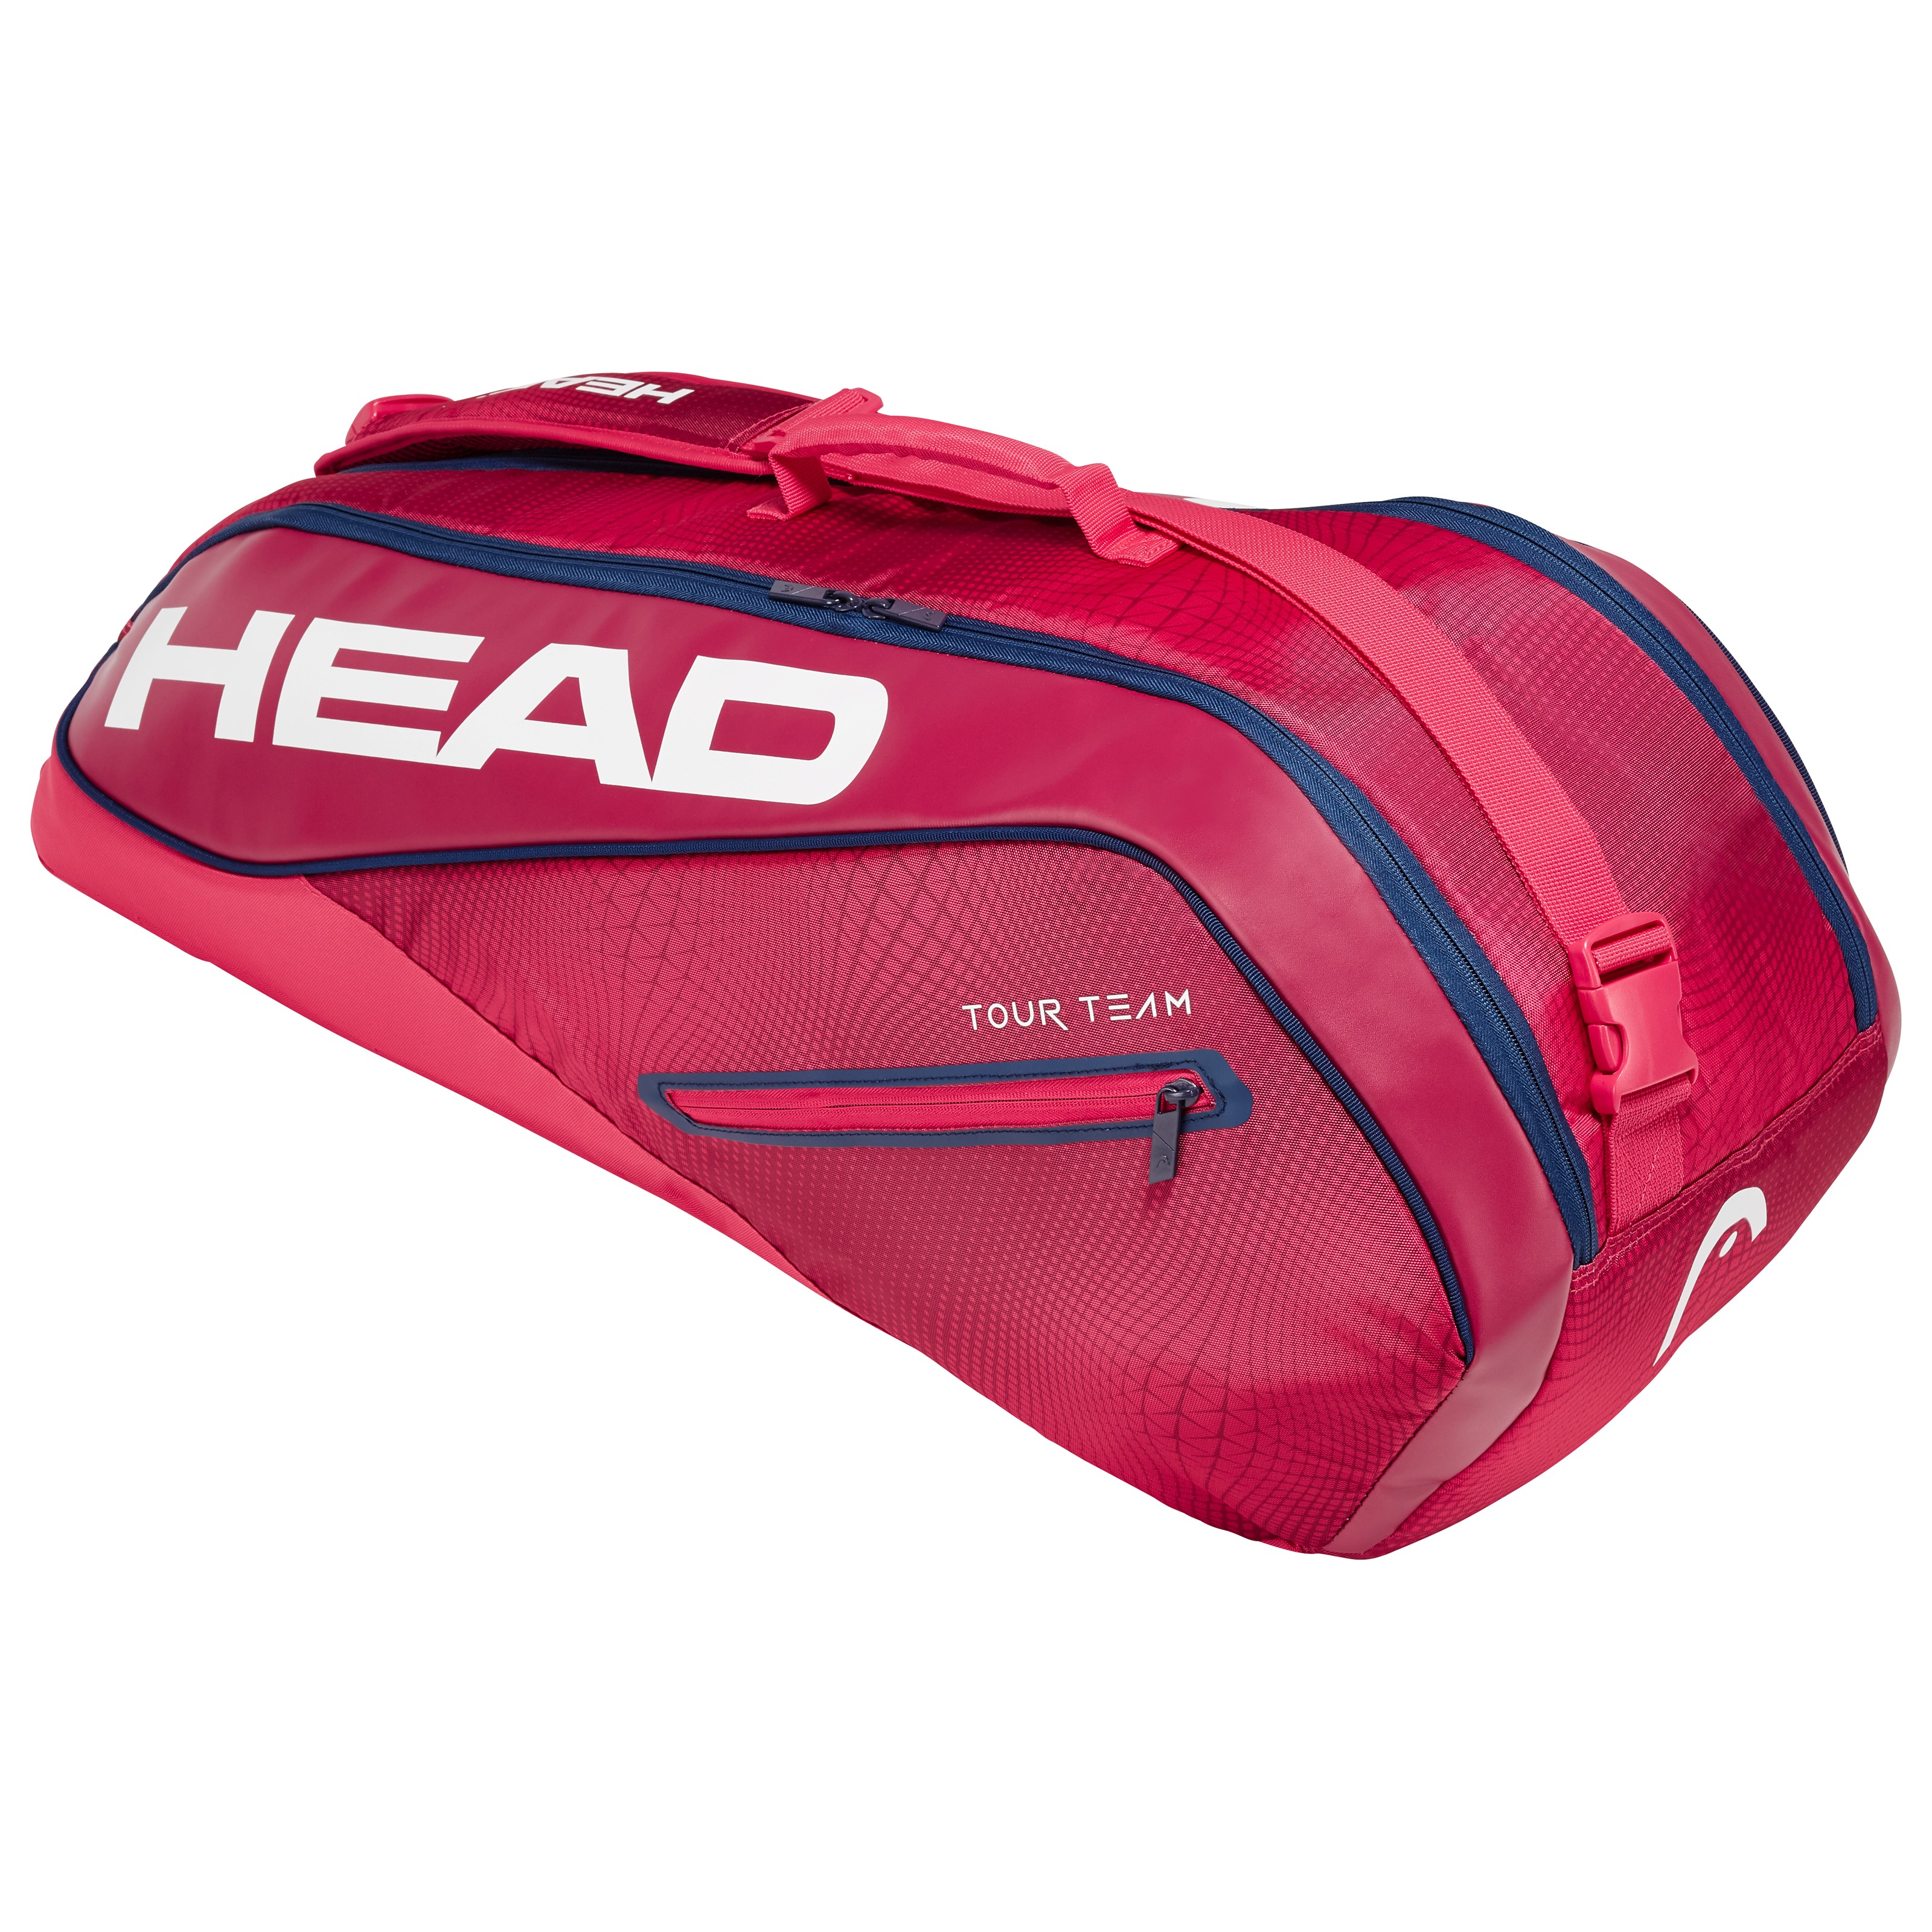 Head Tour Team 6R Combi raspberry/navy